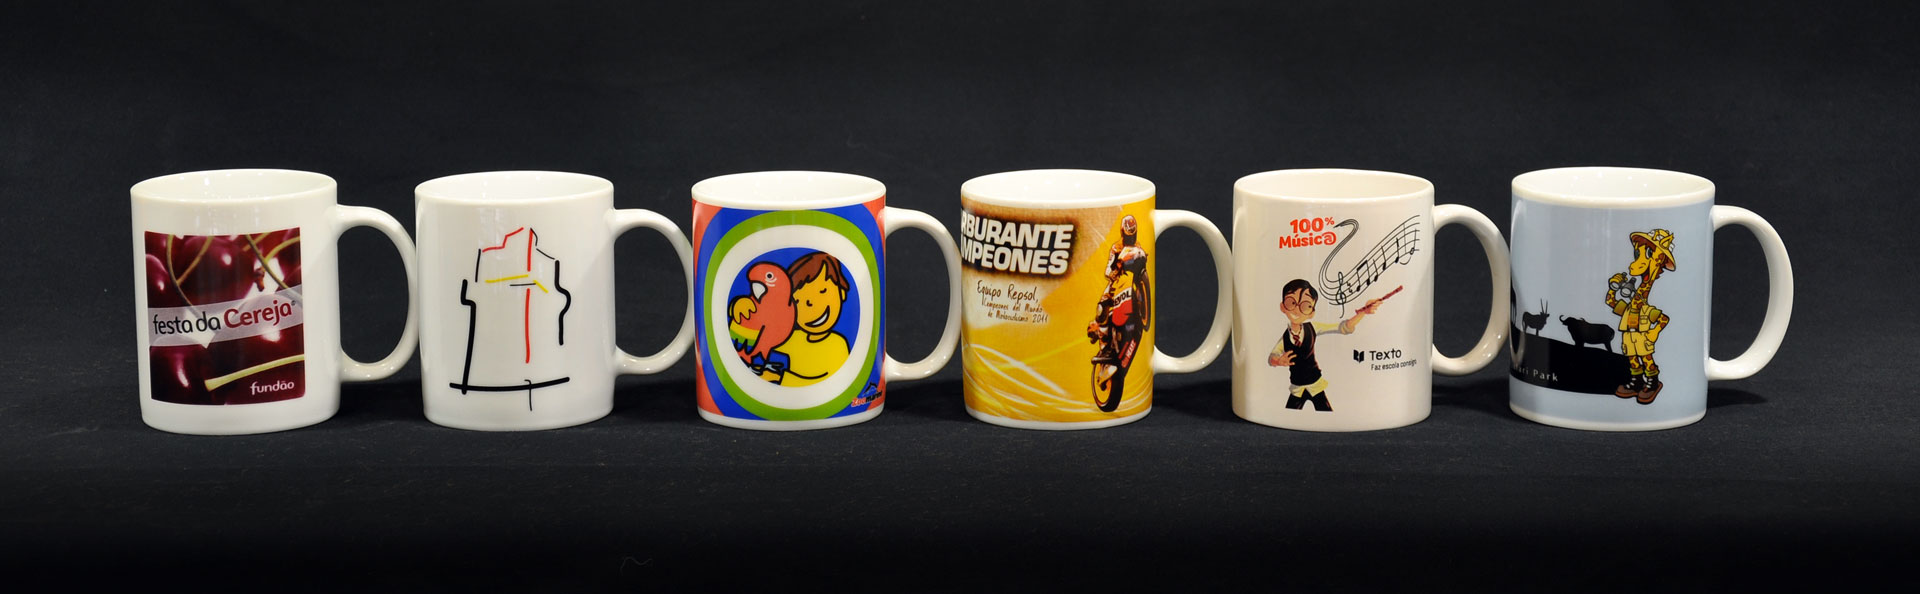 customized mugs - foto 2